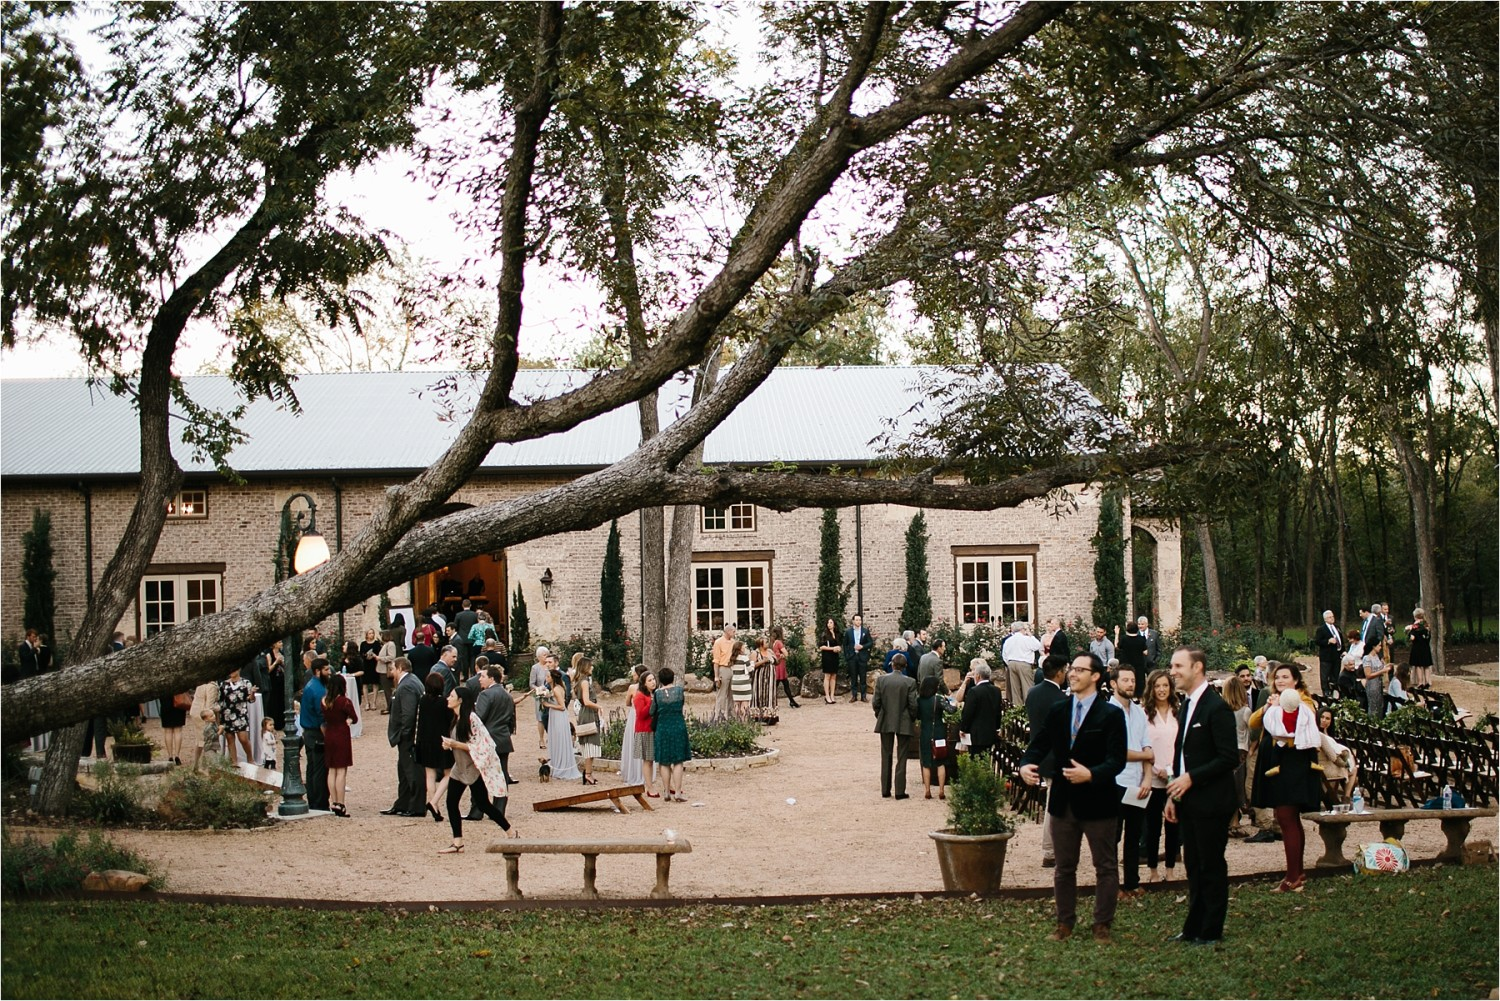 brad-lara-__-a-grey-and-blush-pink-intimate-wedding-at-hidden-waters-event-center-in-waxahachie-tx-by-north-texas-wedding-photographer-rachel-meagan-photography-_-071